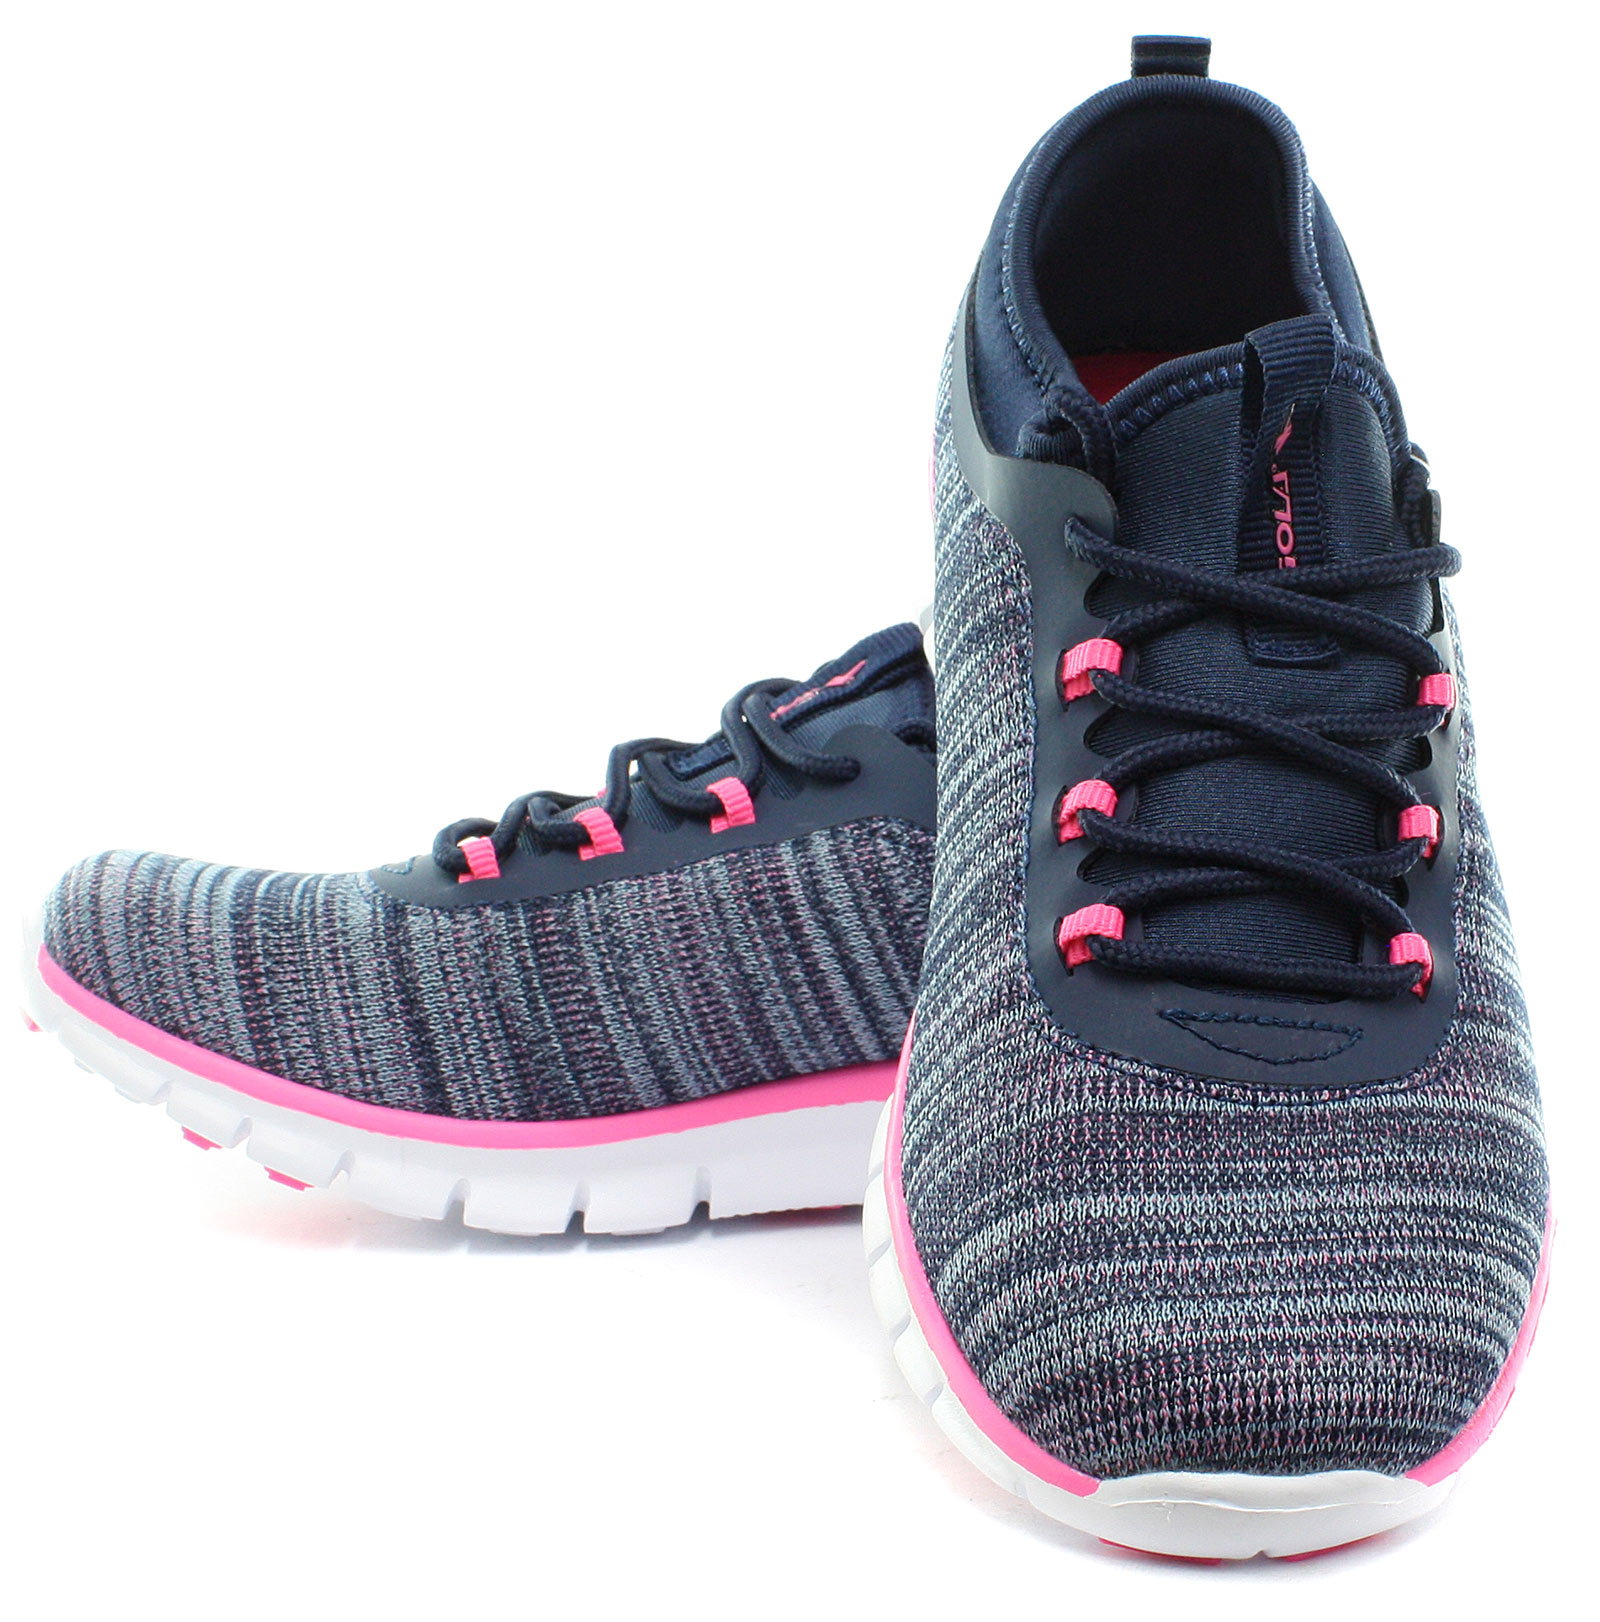 New Gola Active Lovana Damenschuhe Trainers ALL SIZES AND COLOURS